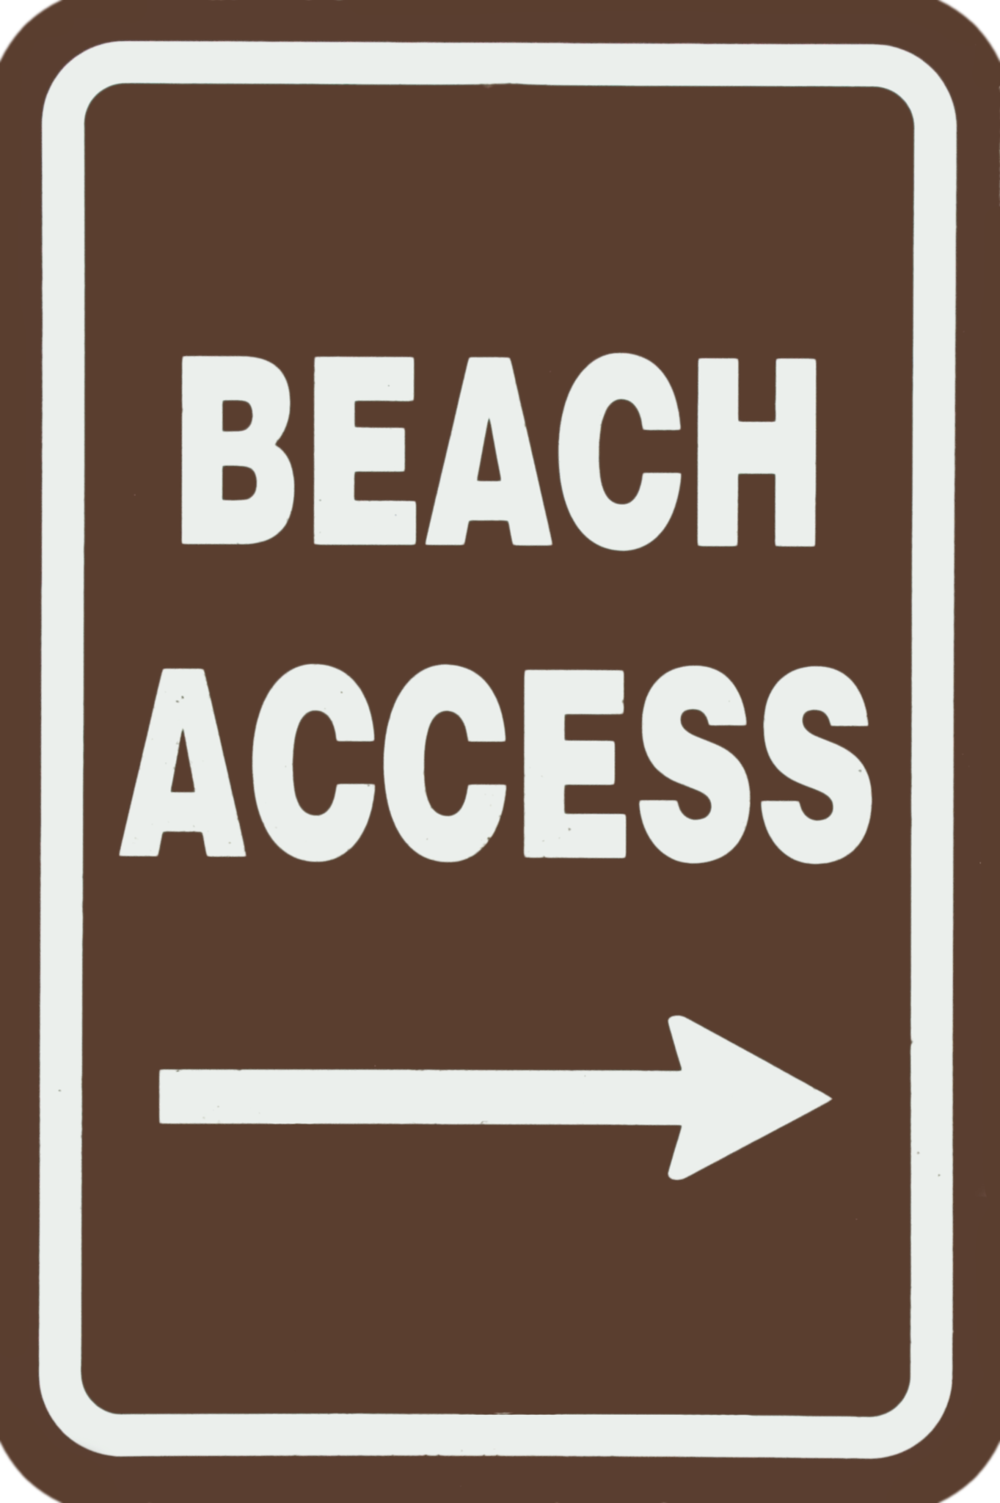 Beach Access.png